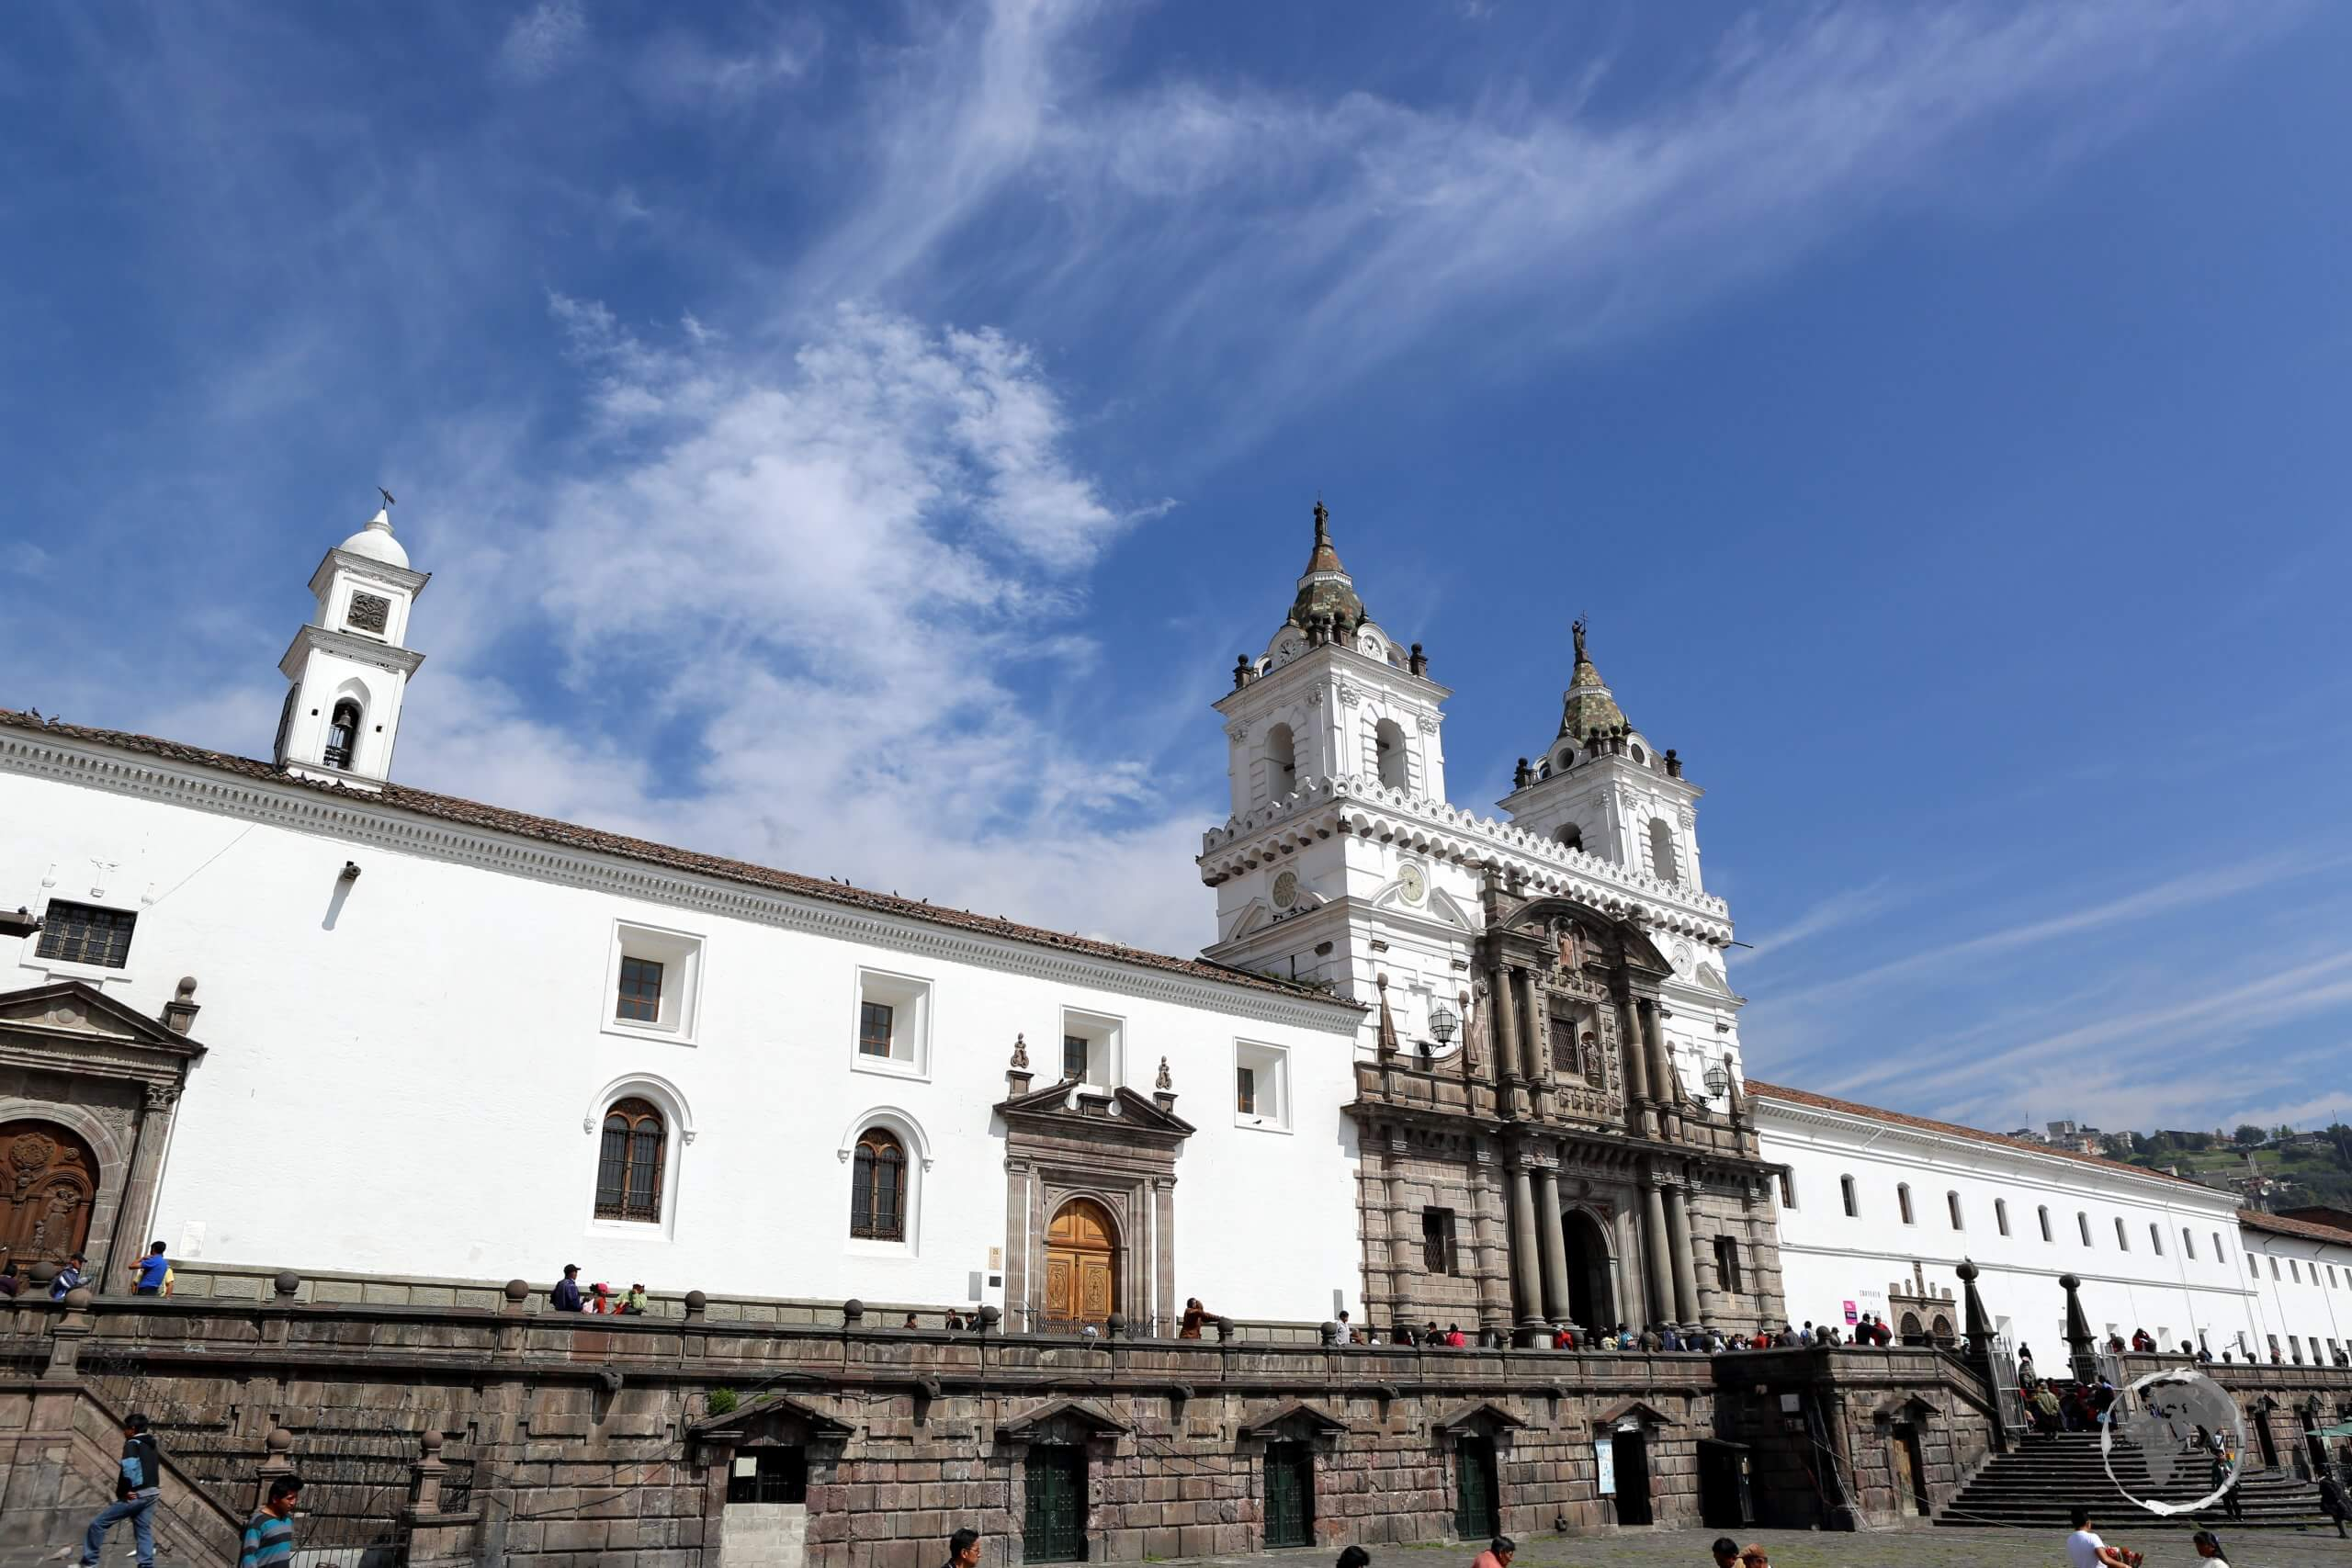 A highlight of Quito, the Church and Convent of St. Francis (Iglesia y Convento de San Francisco), is a vast, 16th-century, Roman Catholic complex which overlooks its namesake - Plaza de San Francisco.